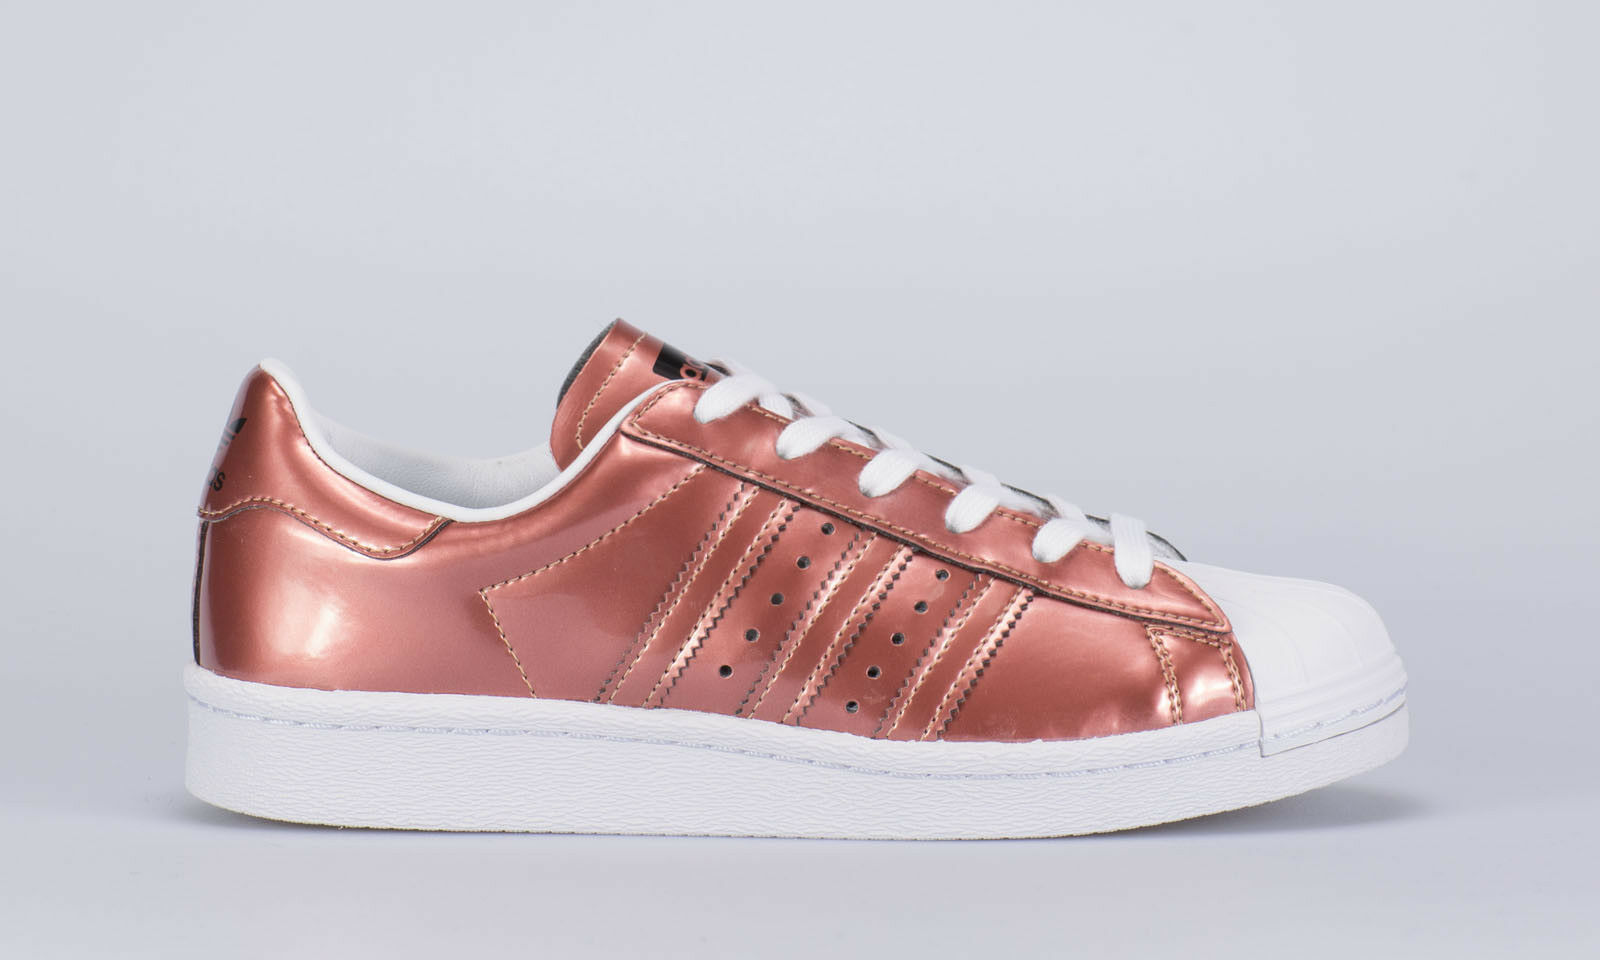 Damenschuhe Copper Adidas Superstar W Boost Copper Damenschuhe Bronze Sneaker BB2270 Gr:38 ZX Samba Neu 6bfa8c